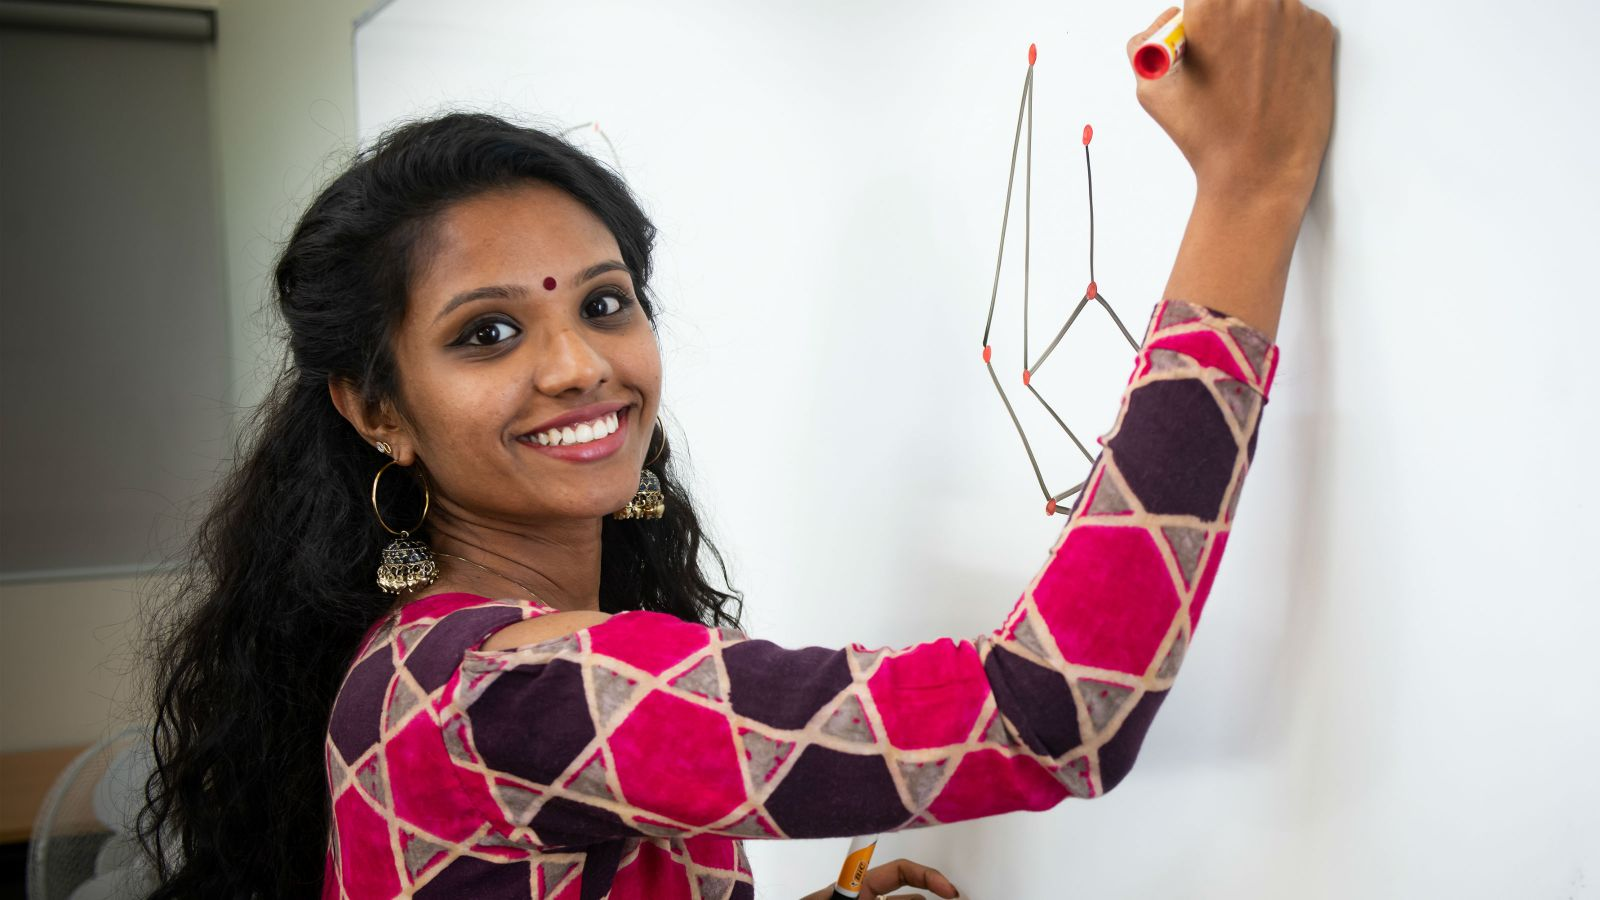 Meenu Jose draws images on a whiteboard.